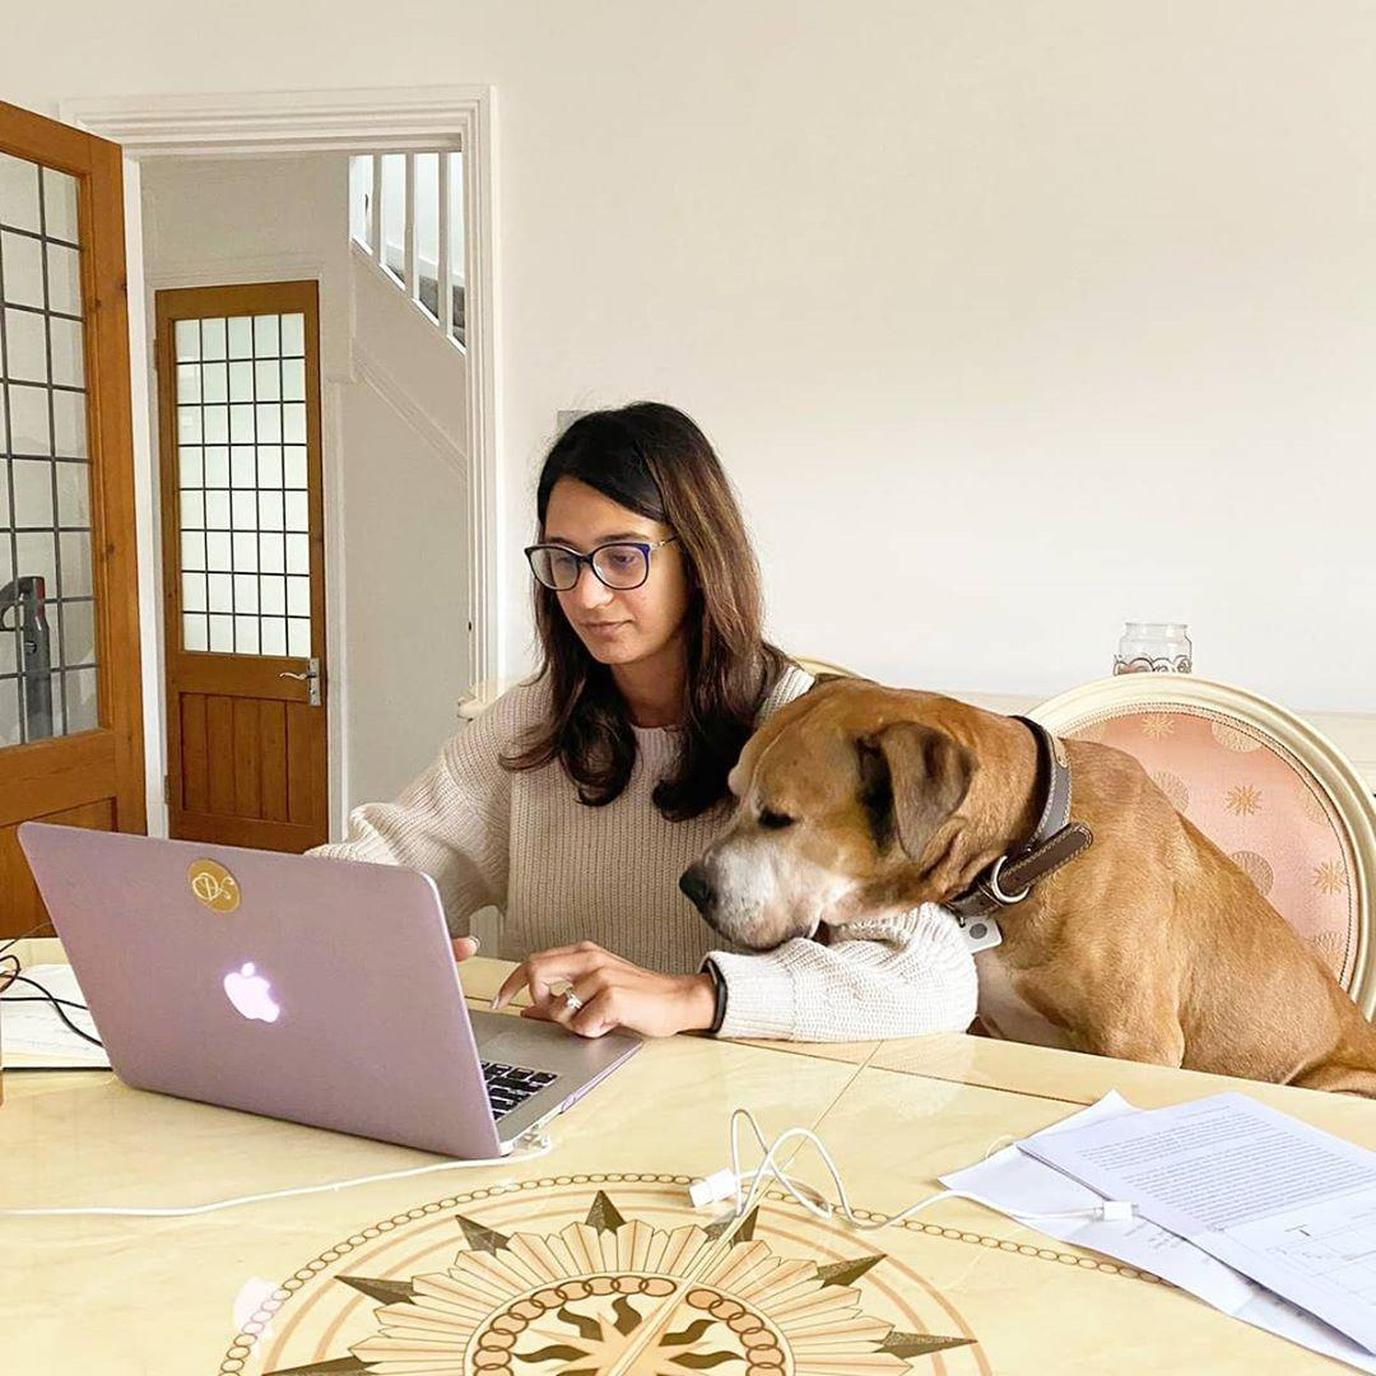 A Dog Looks Over a Woman's Shoulder as She Works From Home.